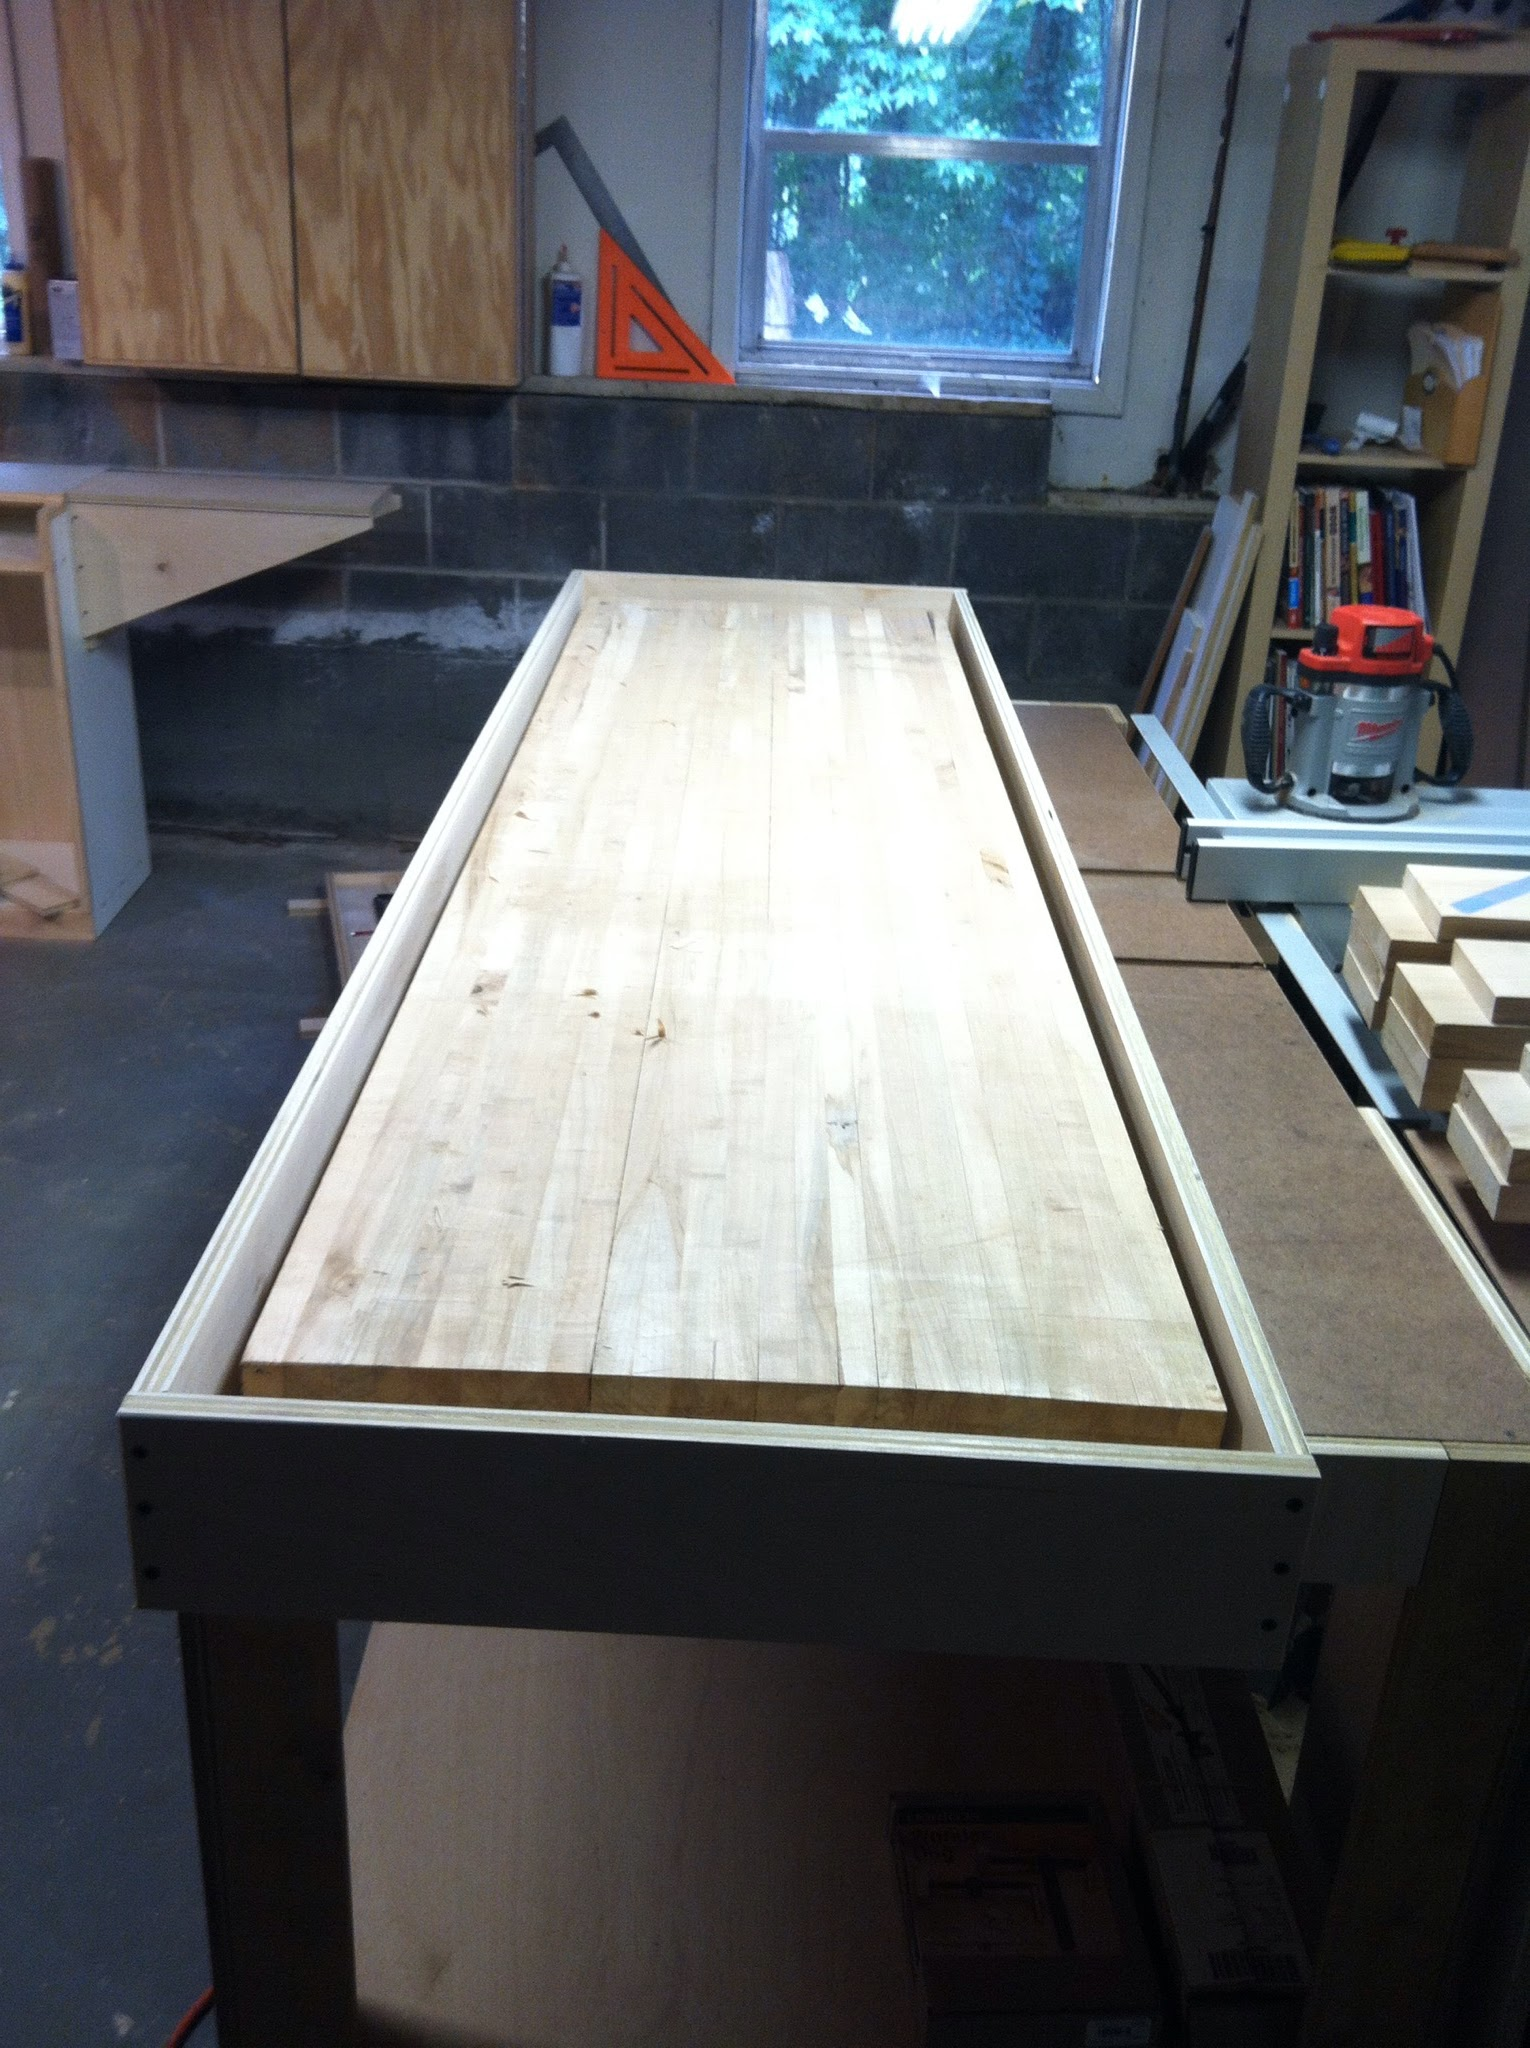 Router frame placed around the benchtop to be flattened